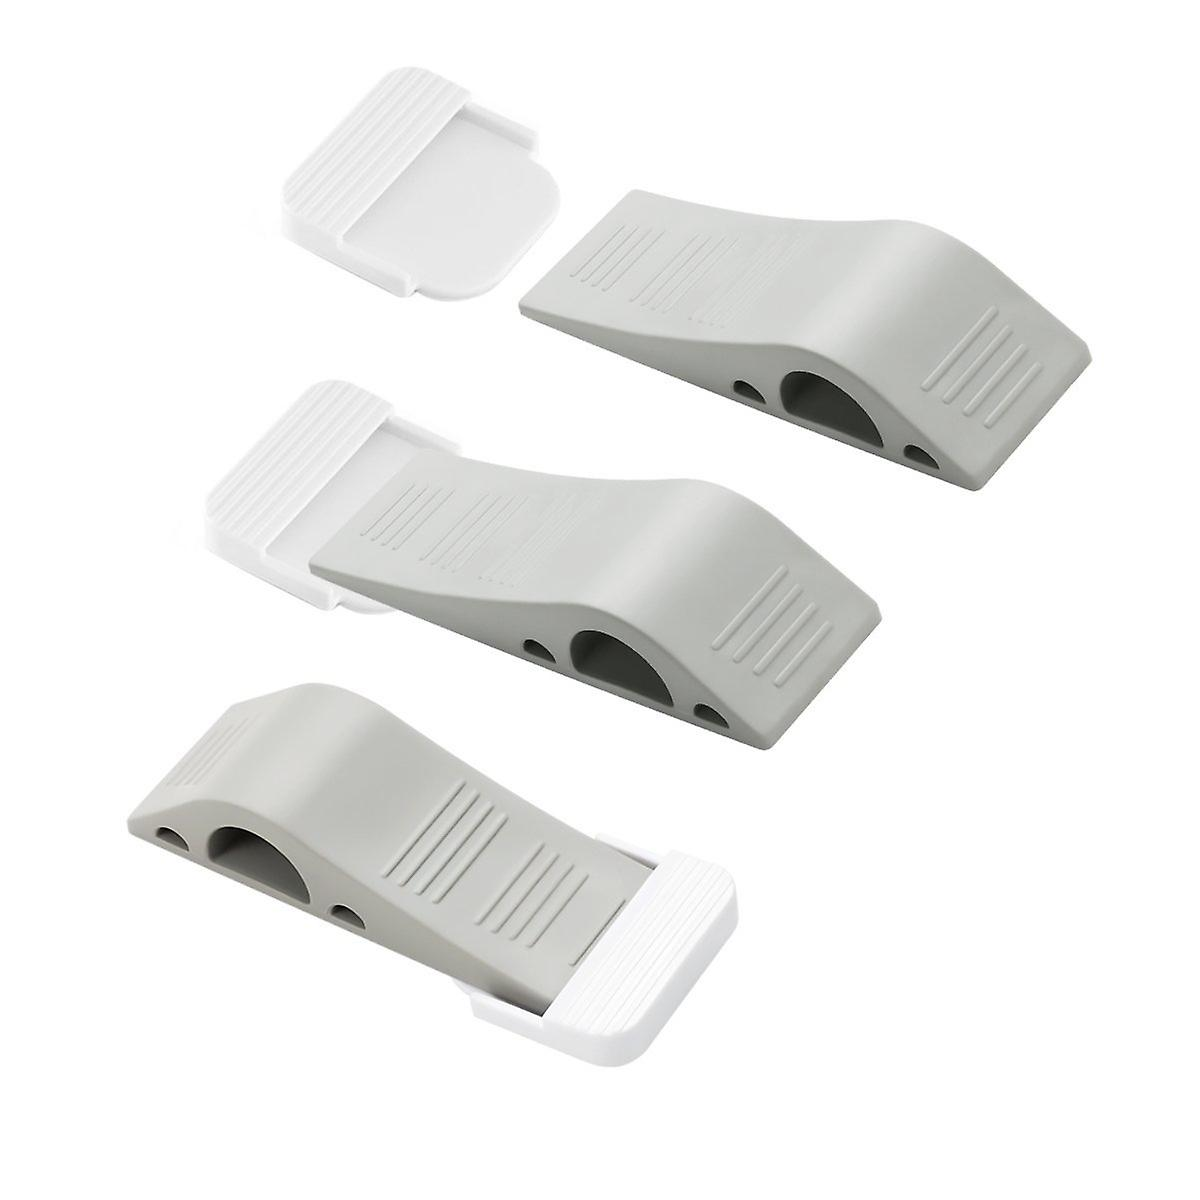 3x Door Stop Wedges Rubber Door Stoppers with Holders Stackable and Slip-Resistant for Tiles Carpet Wood Laminate Floors